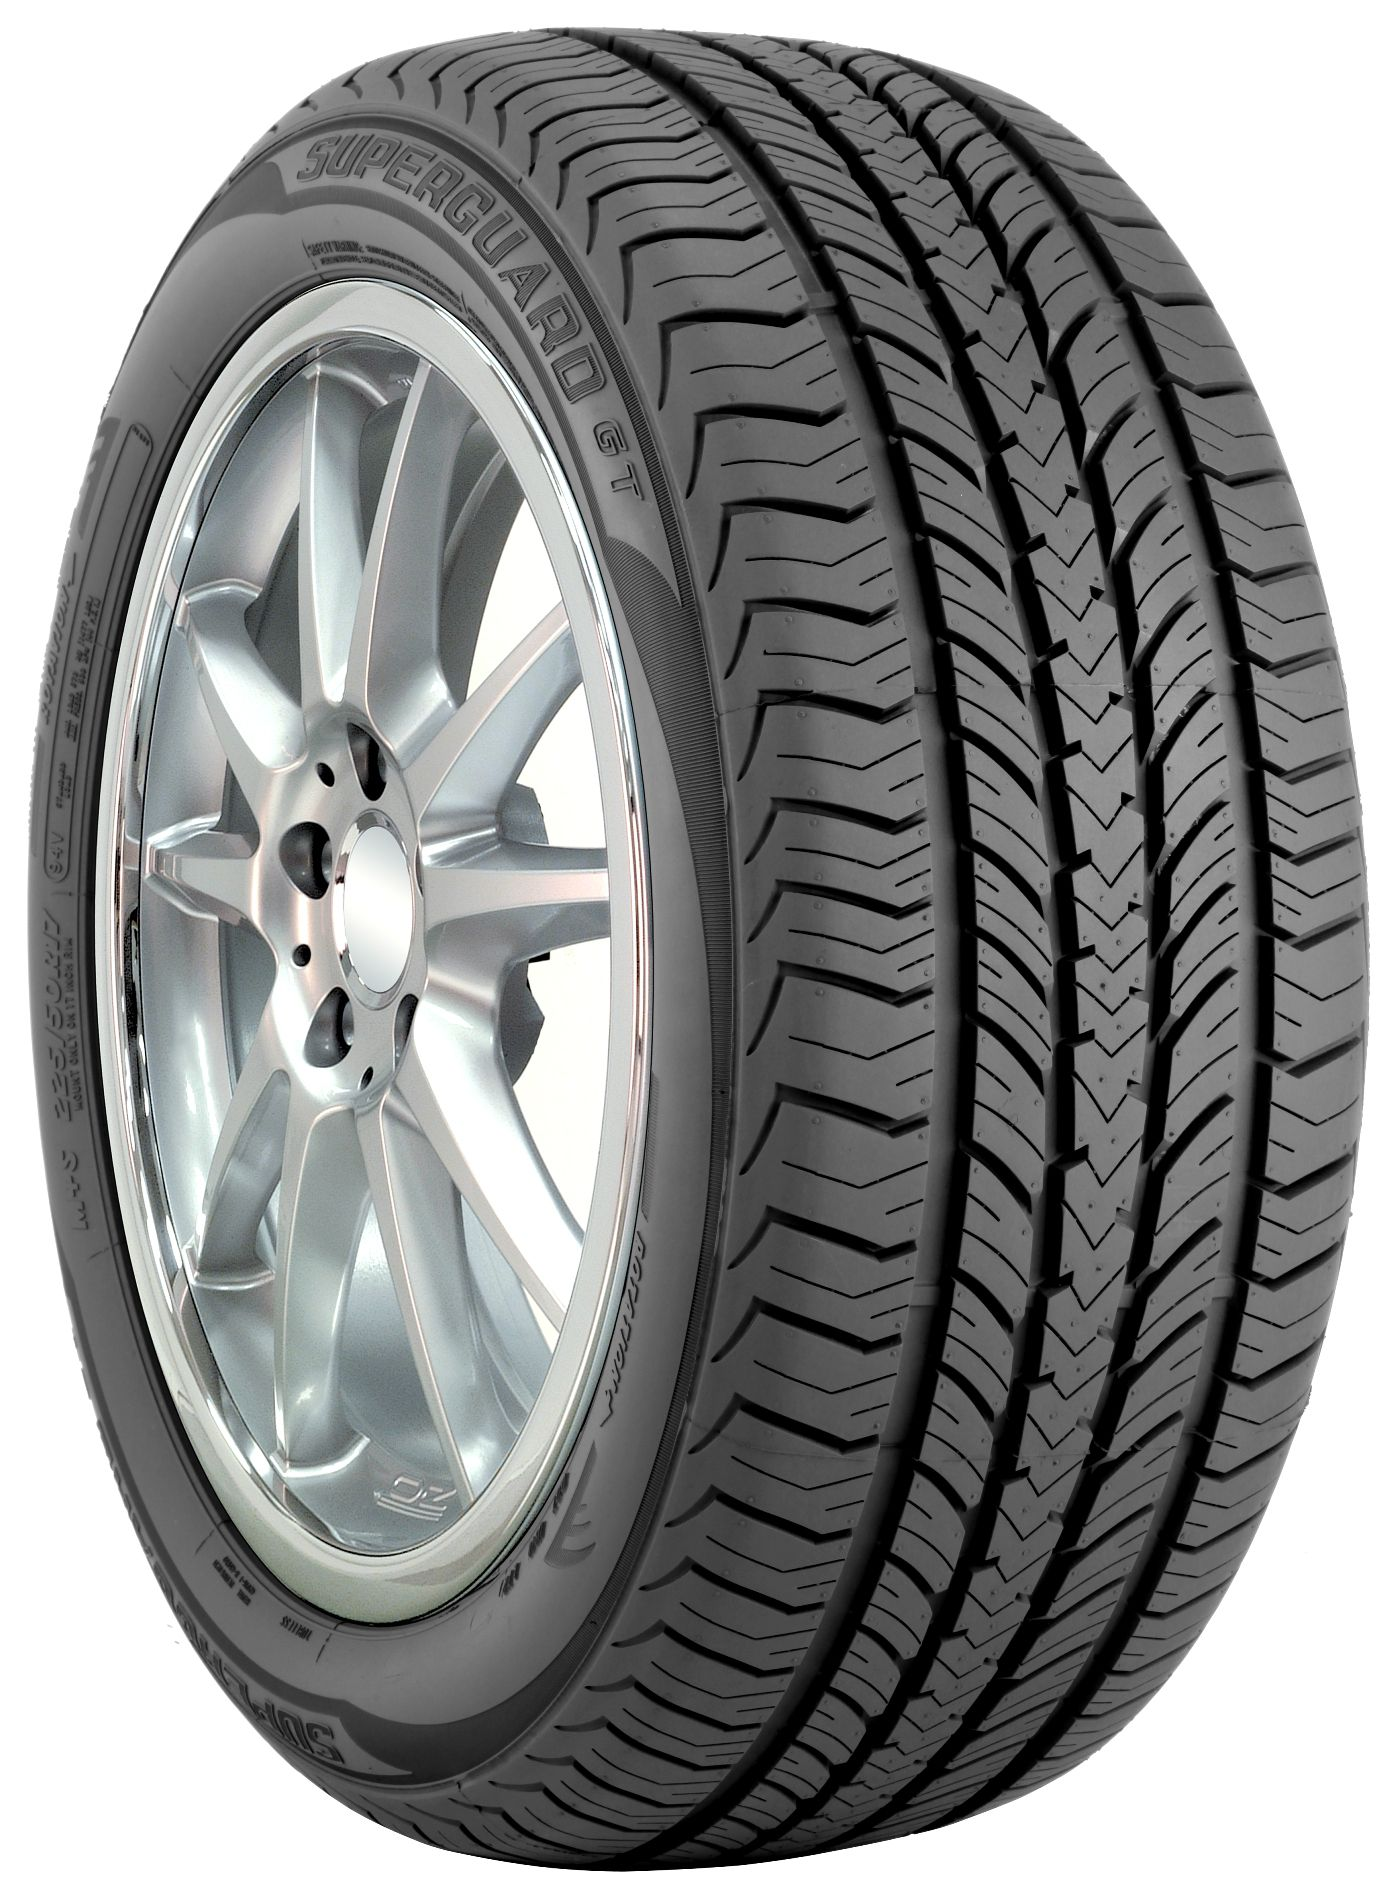 Superguard GT - 205/50R16 87H BW - All Season Tire